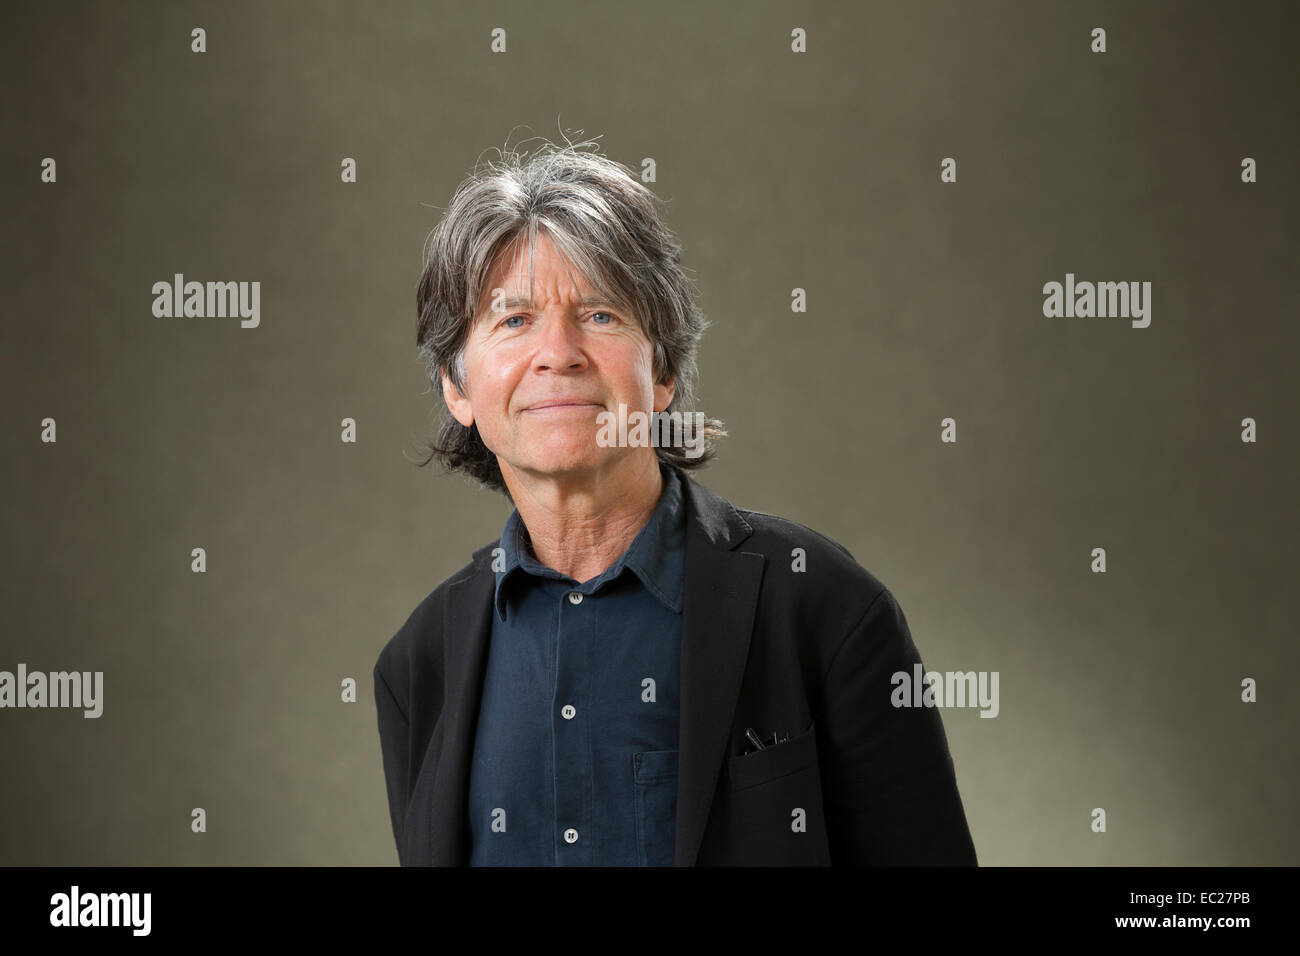 Anthony Browne, the British author and illustrator of children's books, at the Edinburgh International Book - Stock Image